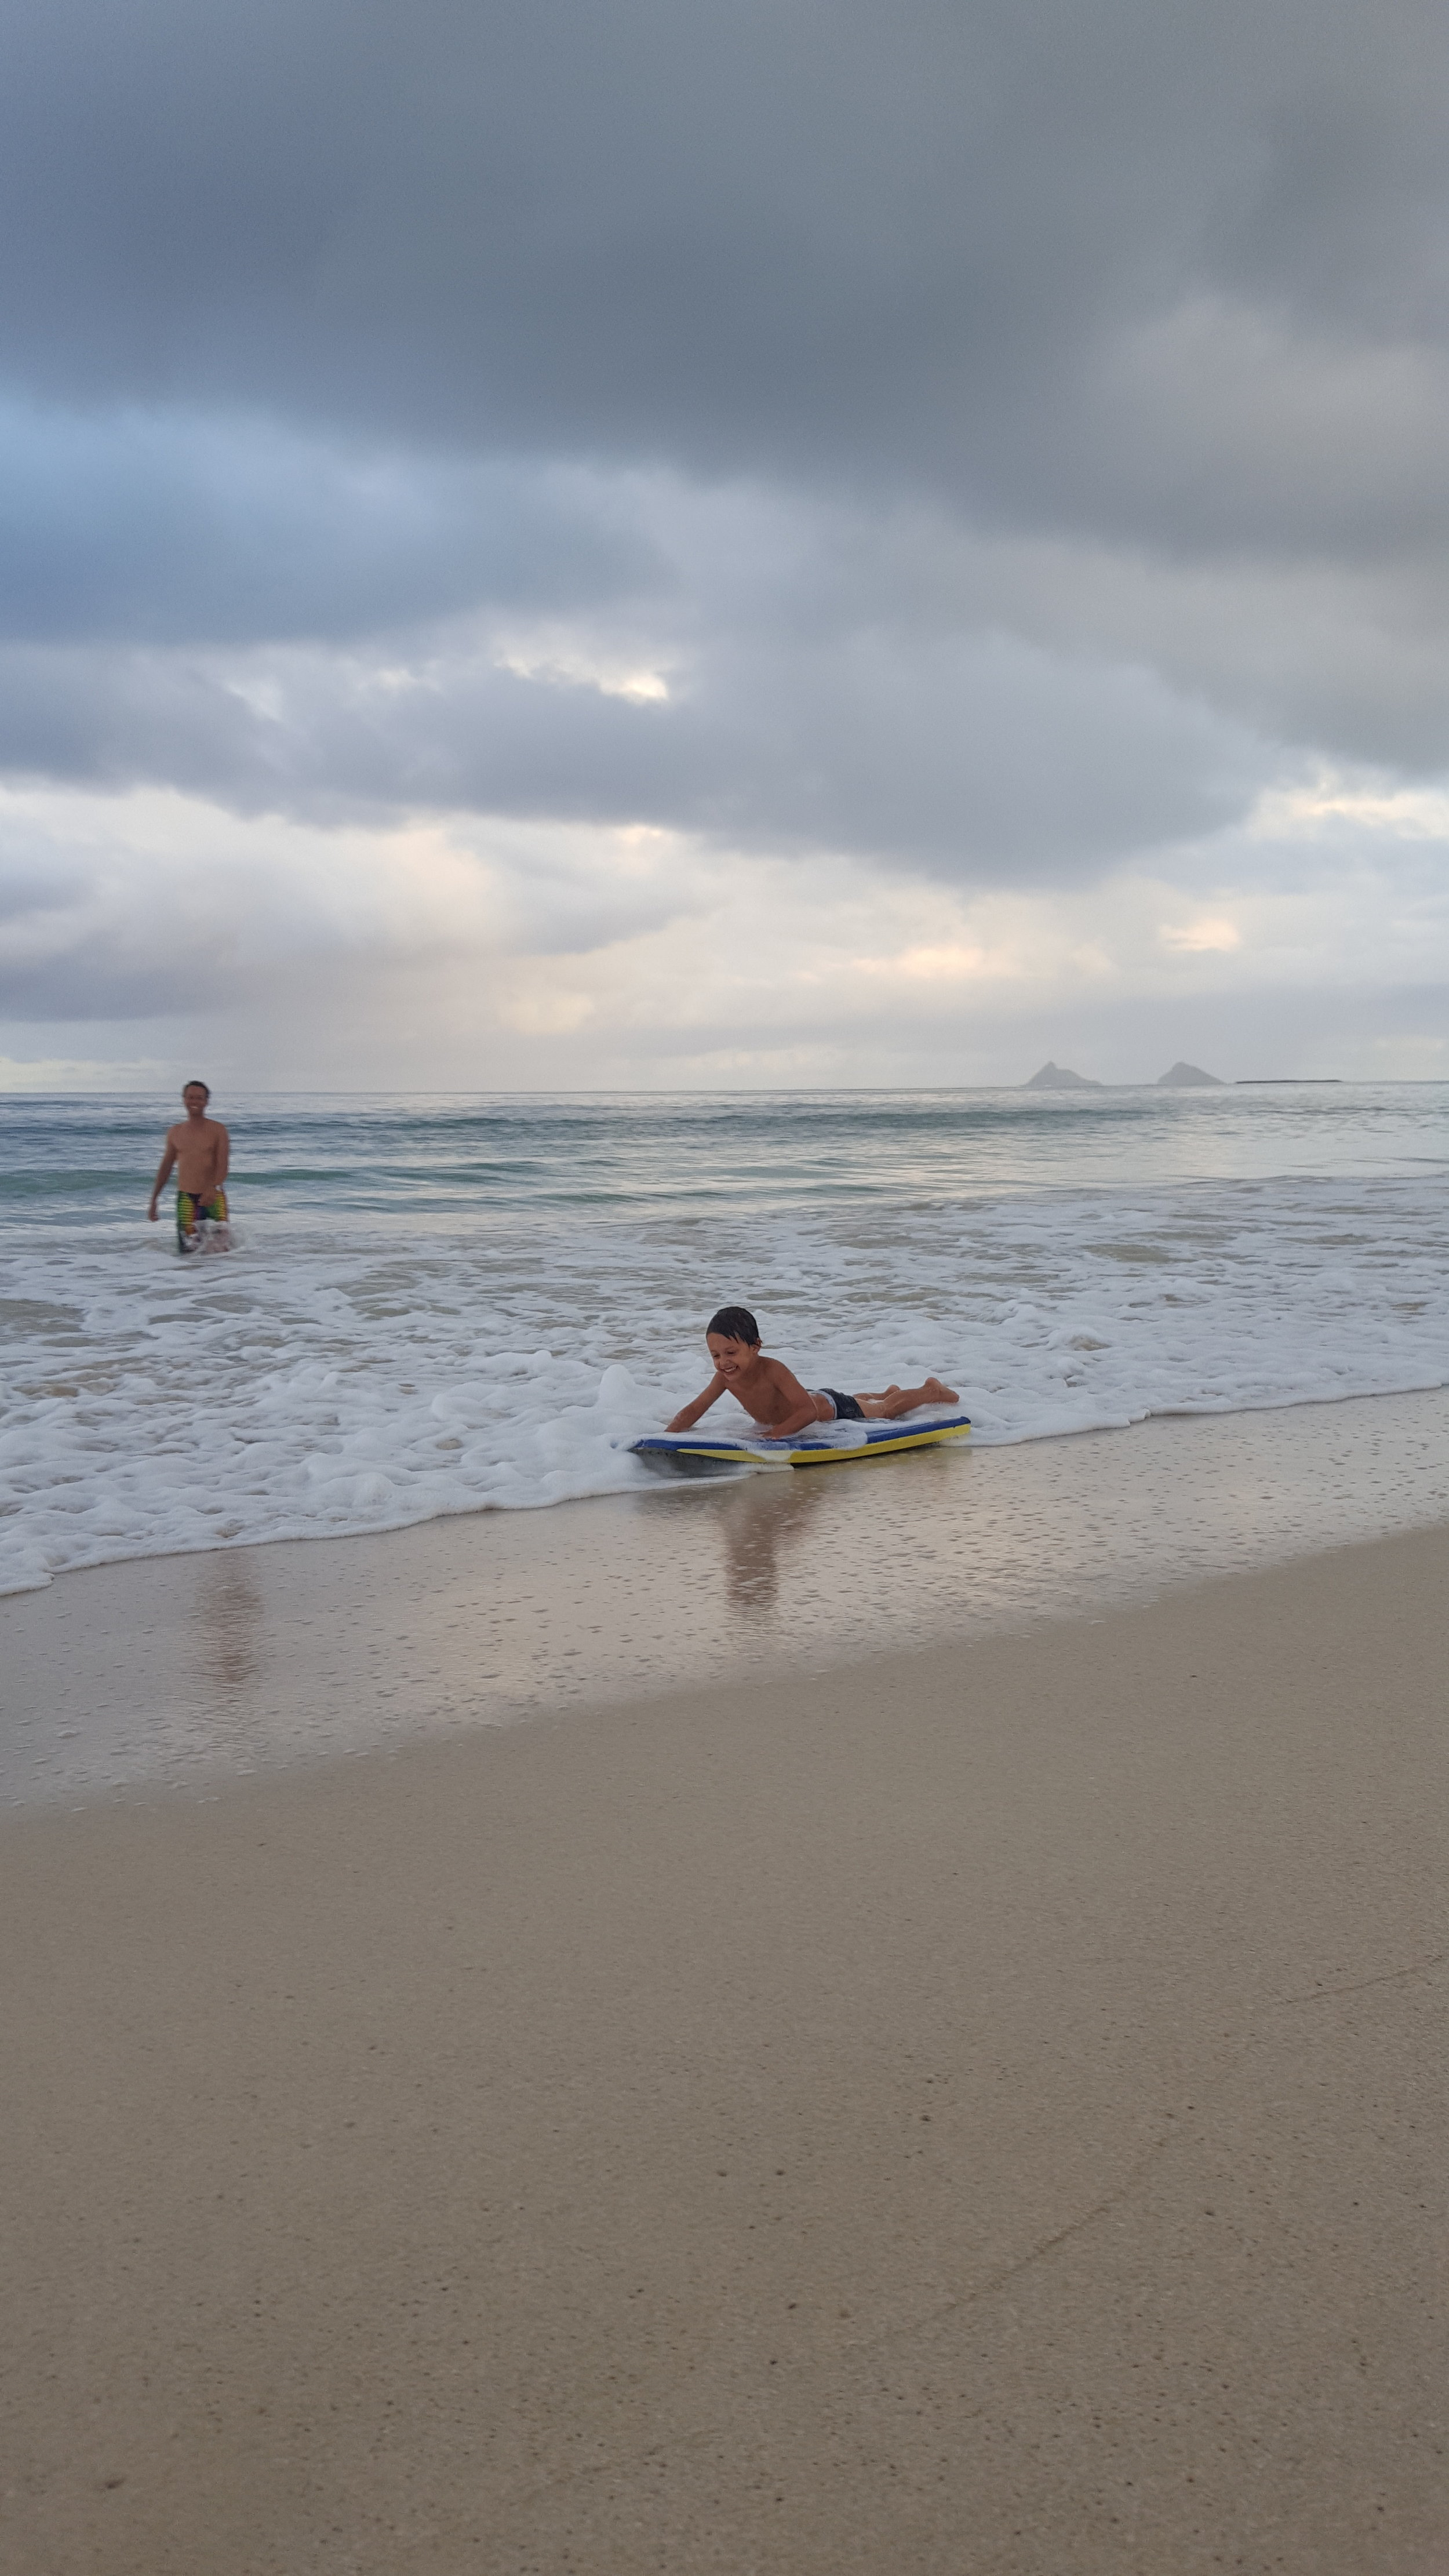 Bennett nailed body boarding for the first time!